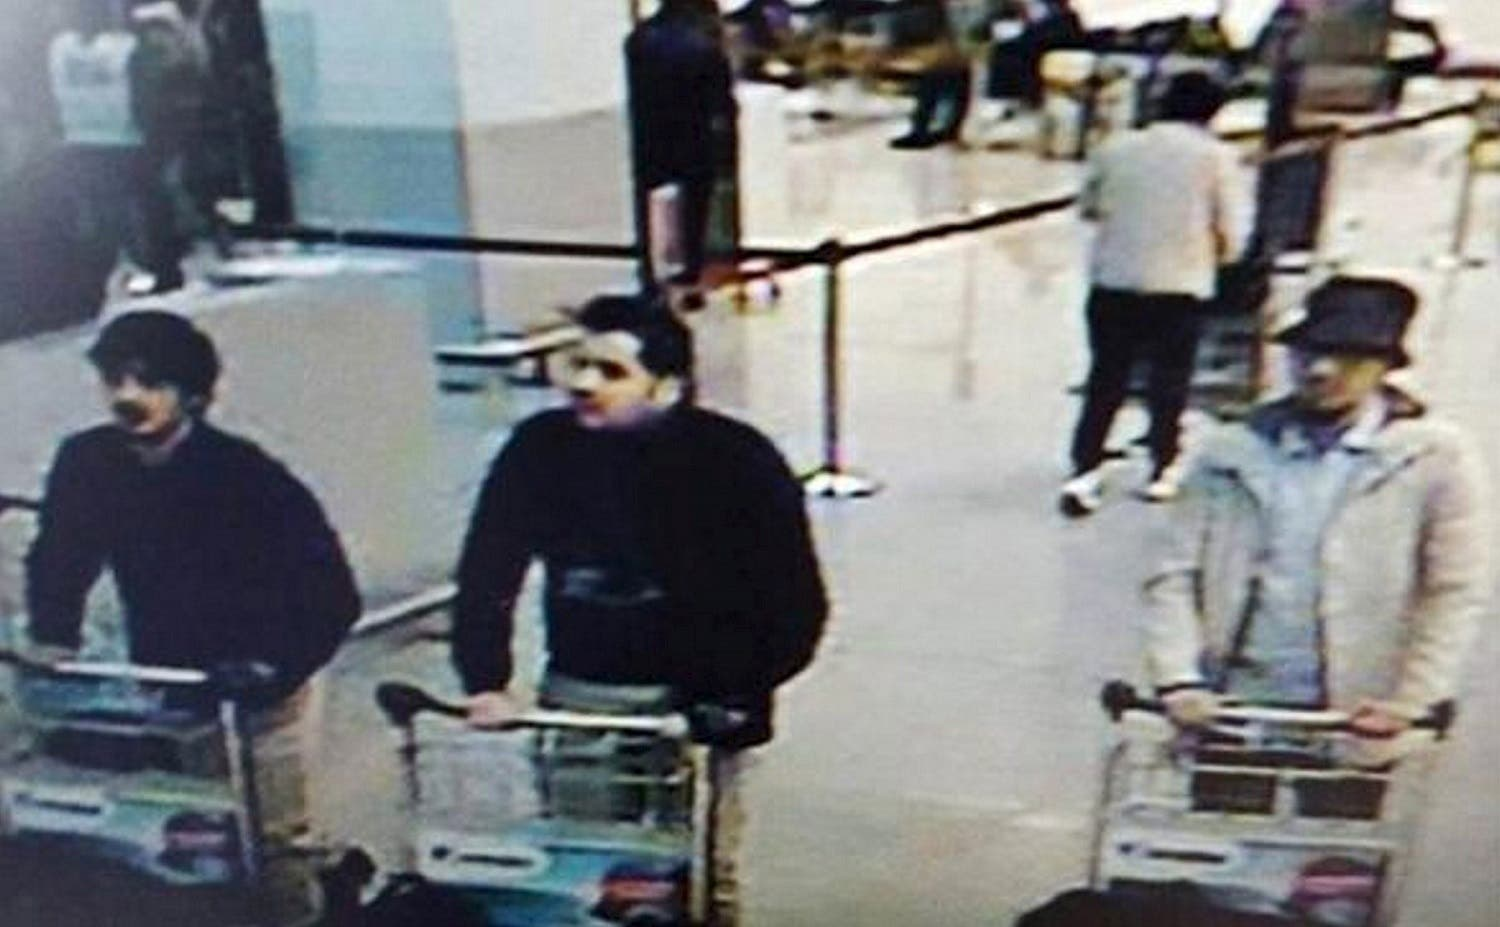 CCTV surveillance image shows what Belgian officials believe may be suspects in the Brussels airport attack. (Reuters)